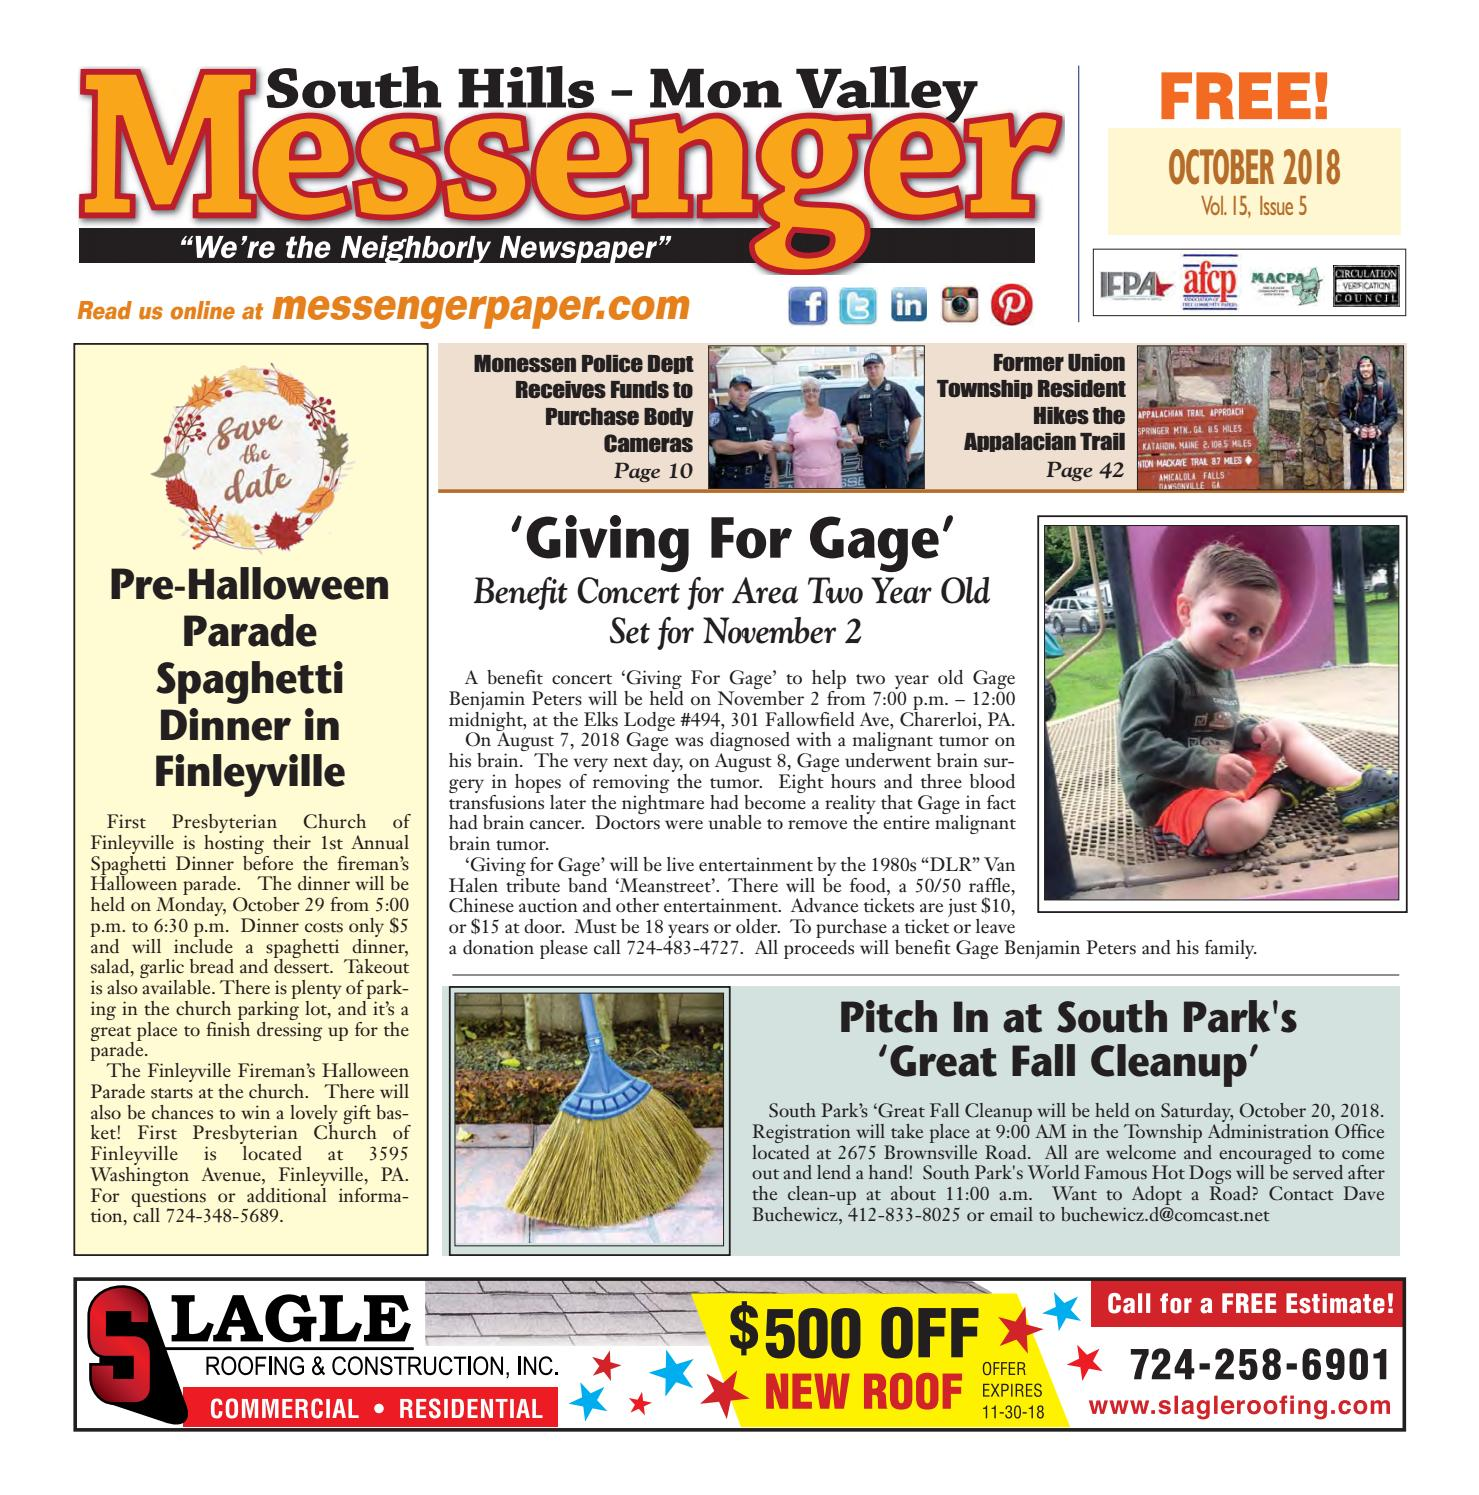 South Hills Mon Valley Messenger October 2018 by South Hills